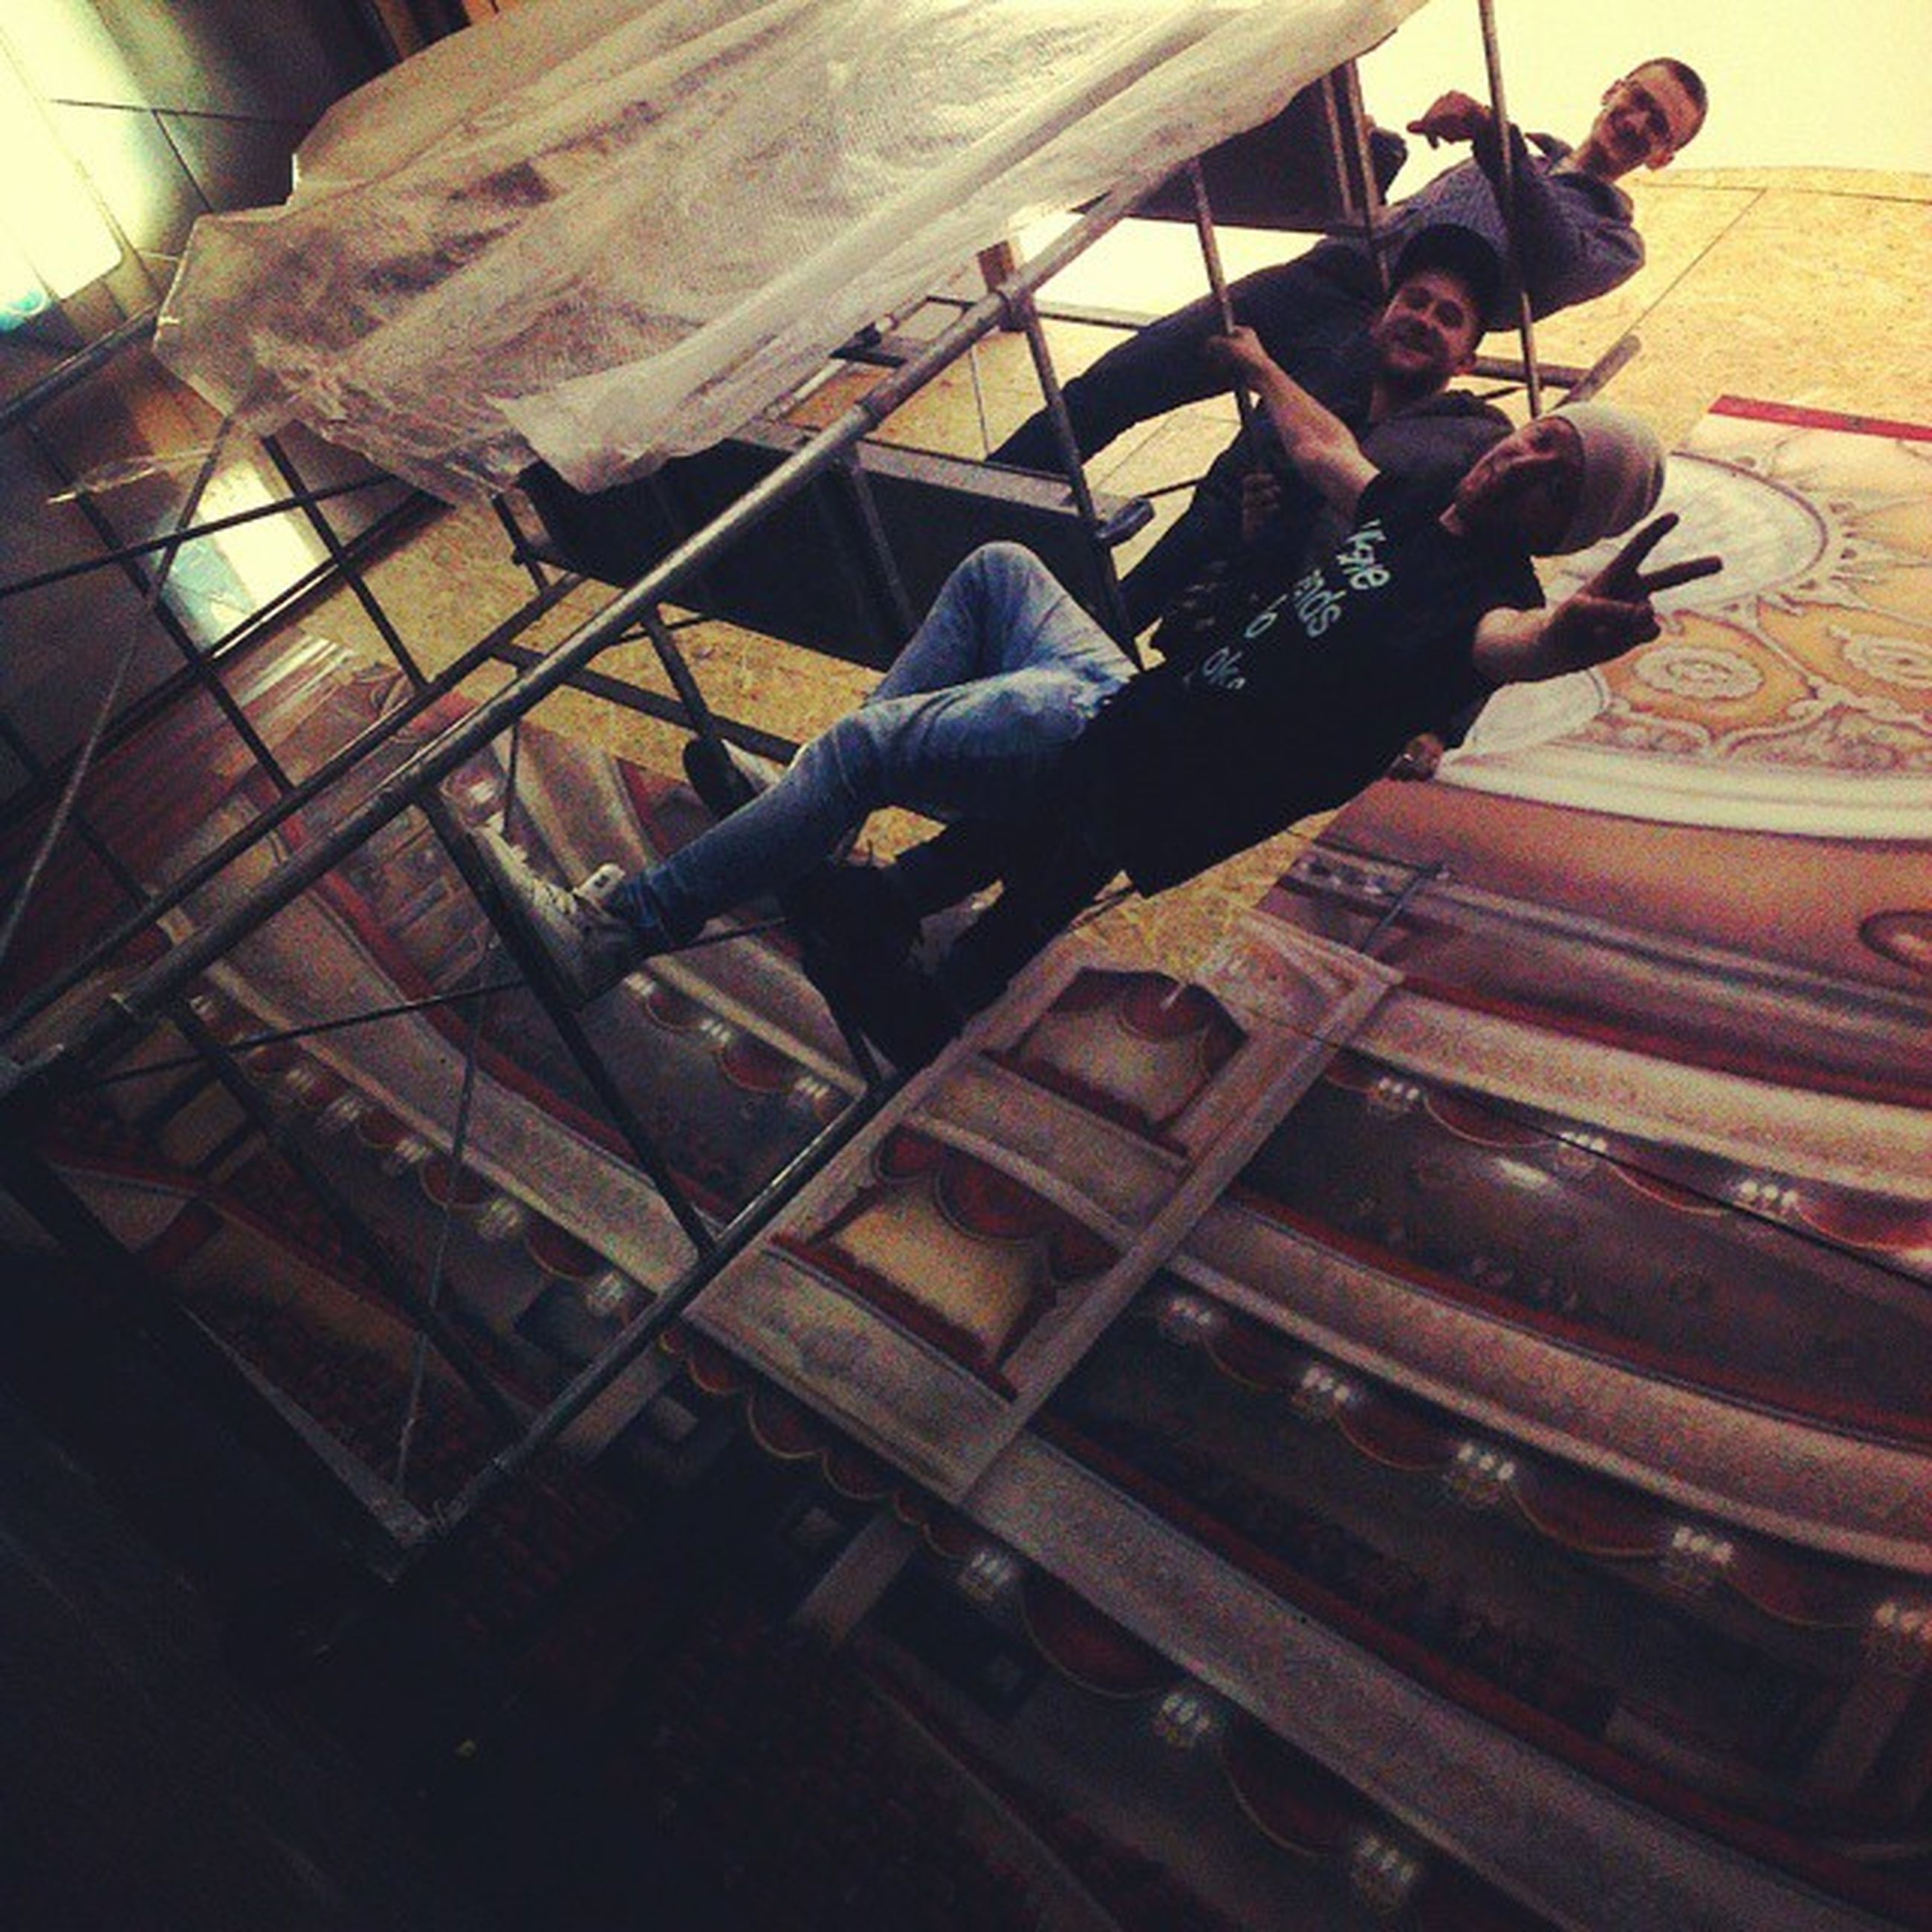 indoors, lifestyles, full length, sitting, working, leisure activity, casual clothing, young adult, occupation, high angle view, men, skill, young men, arts culture and entertainment, side view, person, day, sunlight